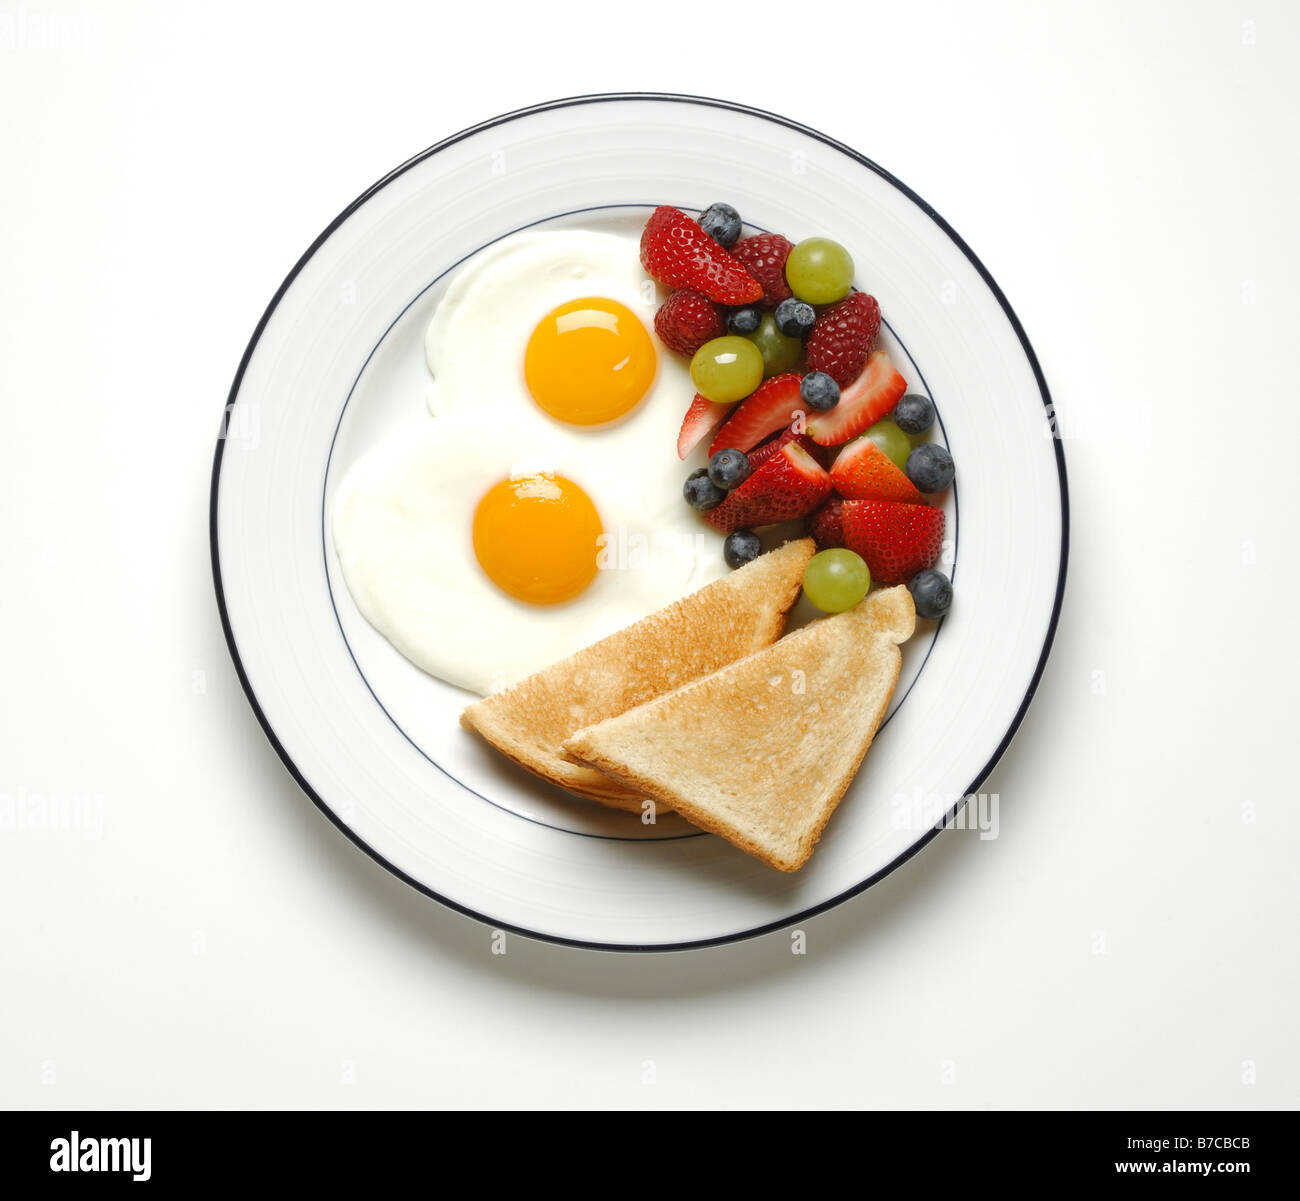 A breakfast serving of fried eggs, toast and mixed fruits - Stock Image